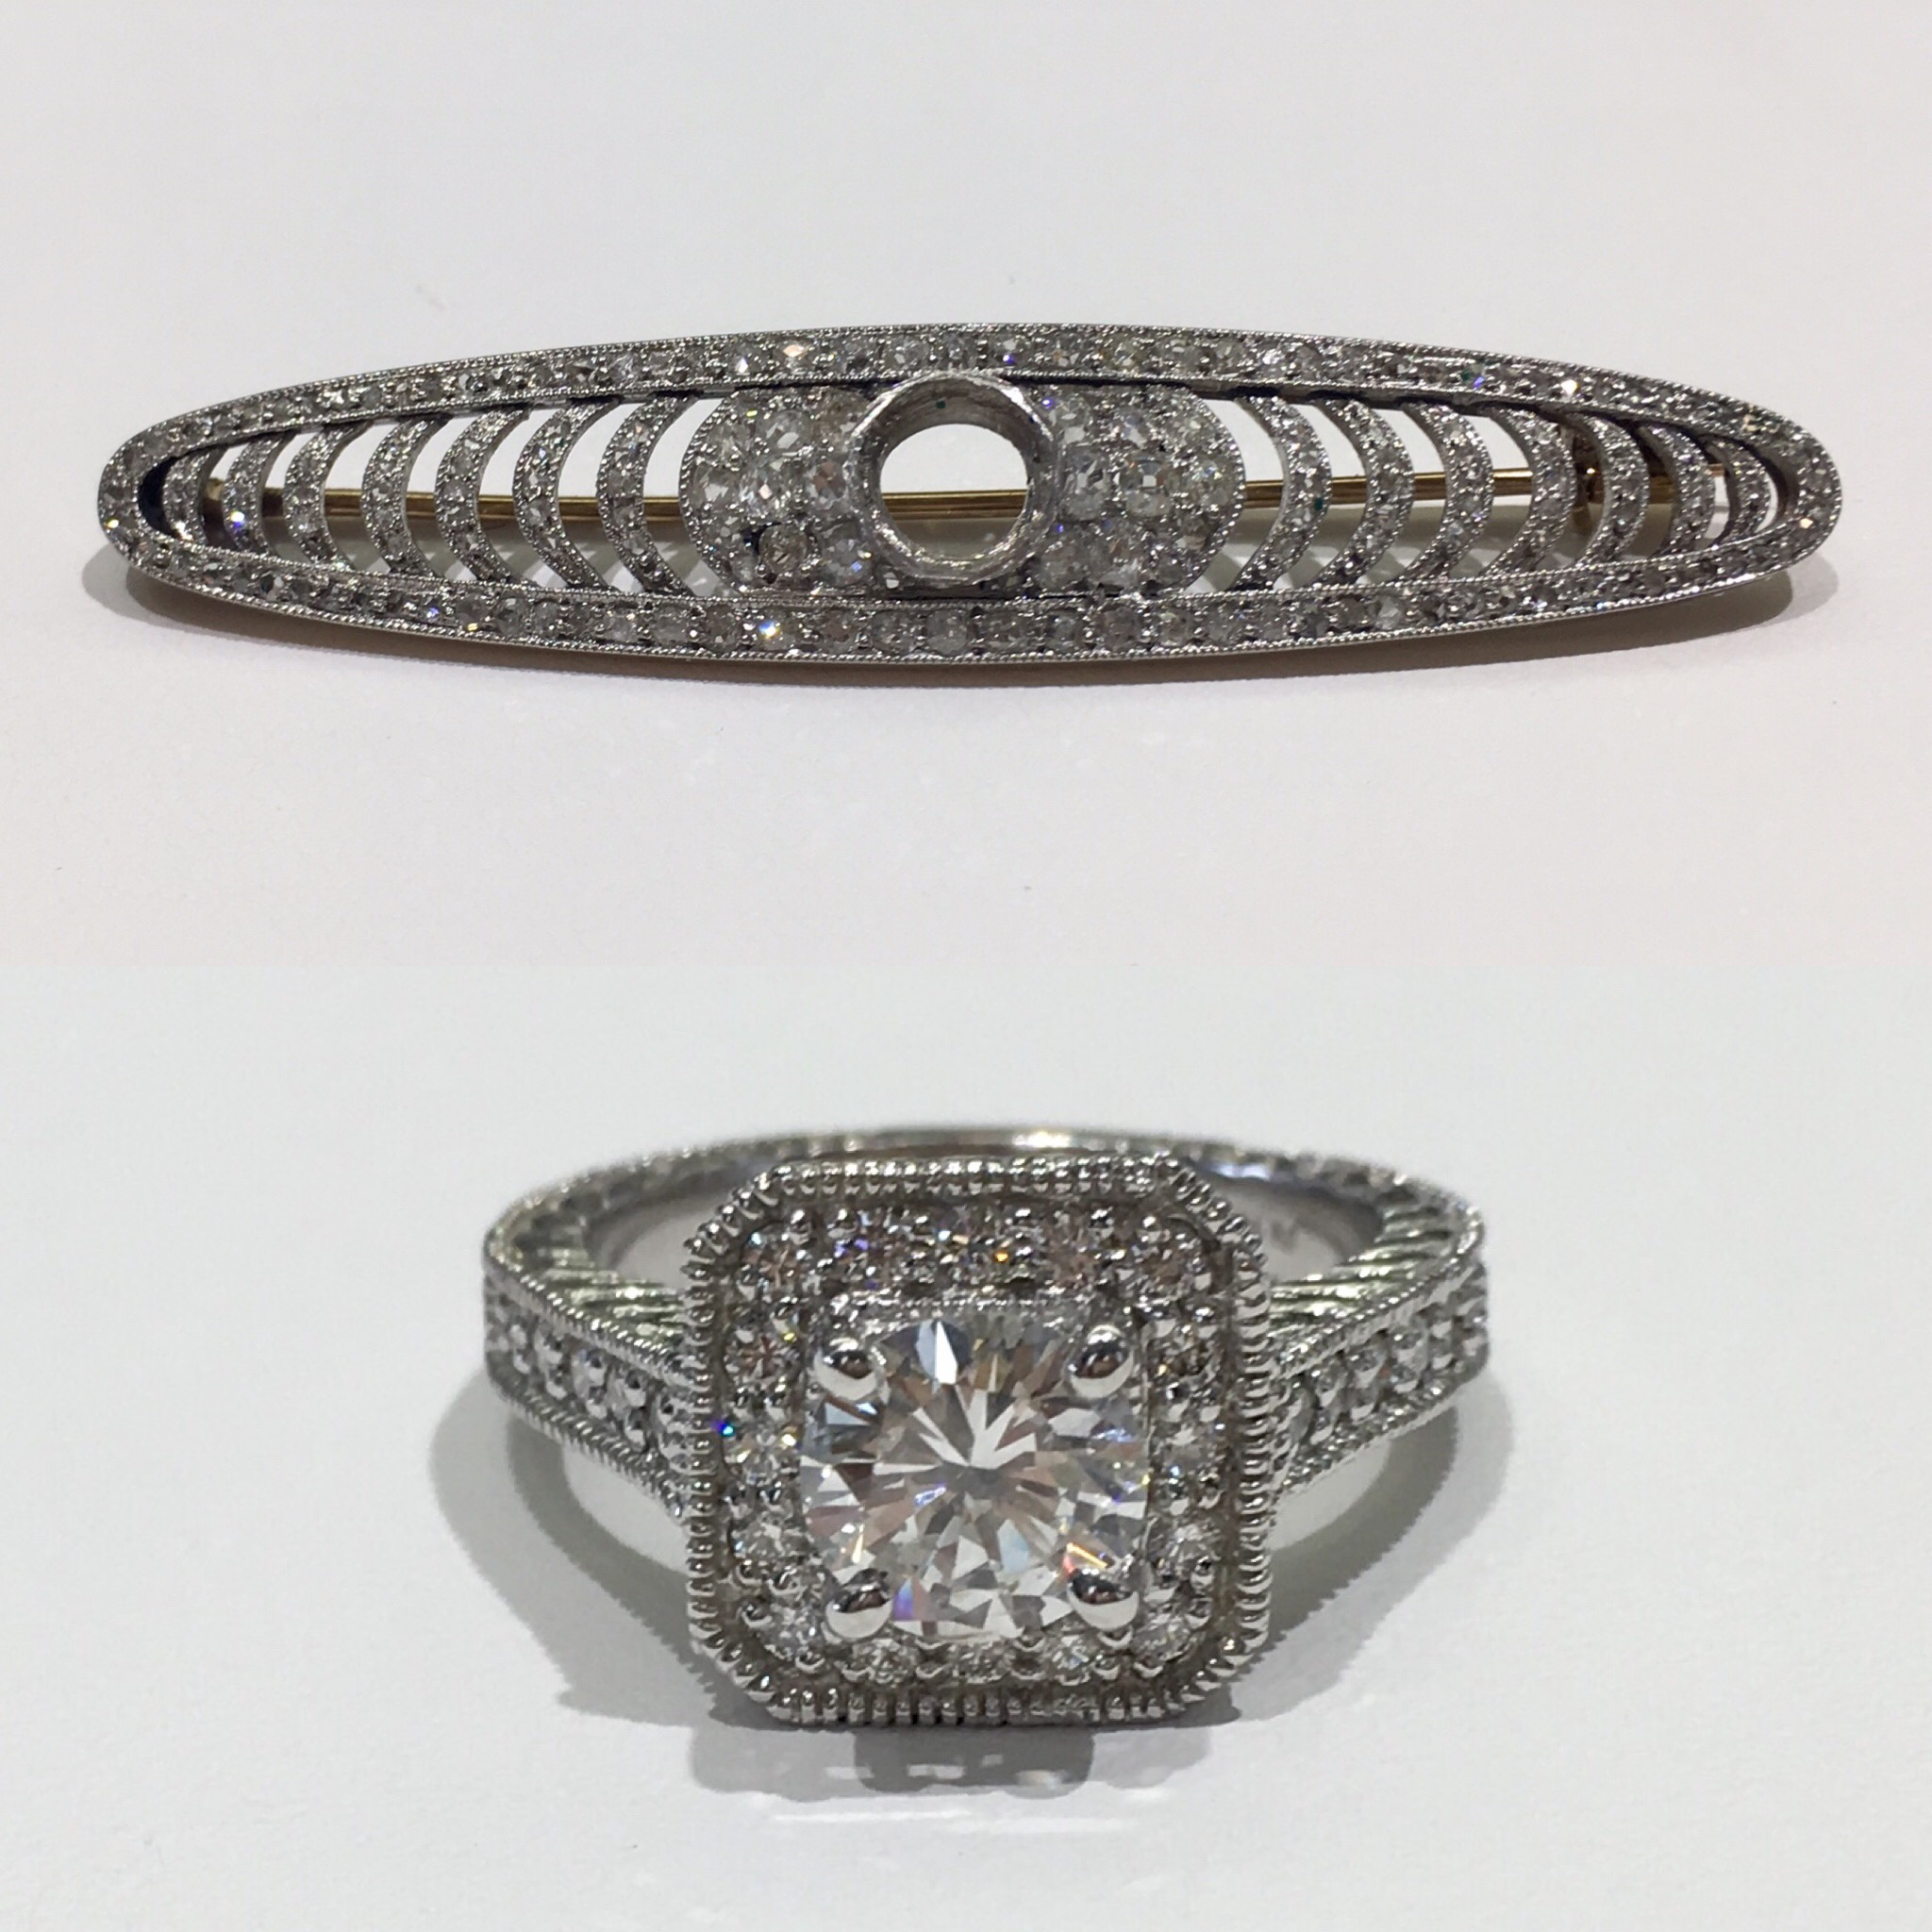 Creating legacy with a grandmother's diamond reset into an engagement ring.